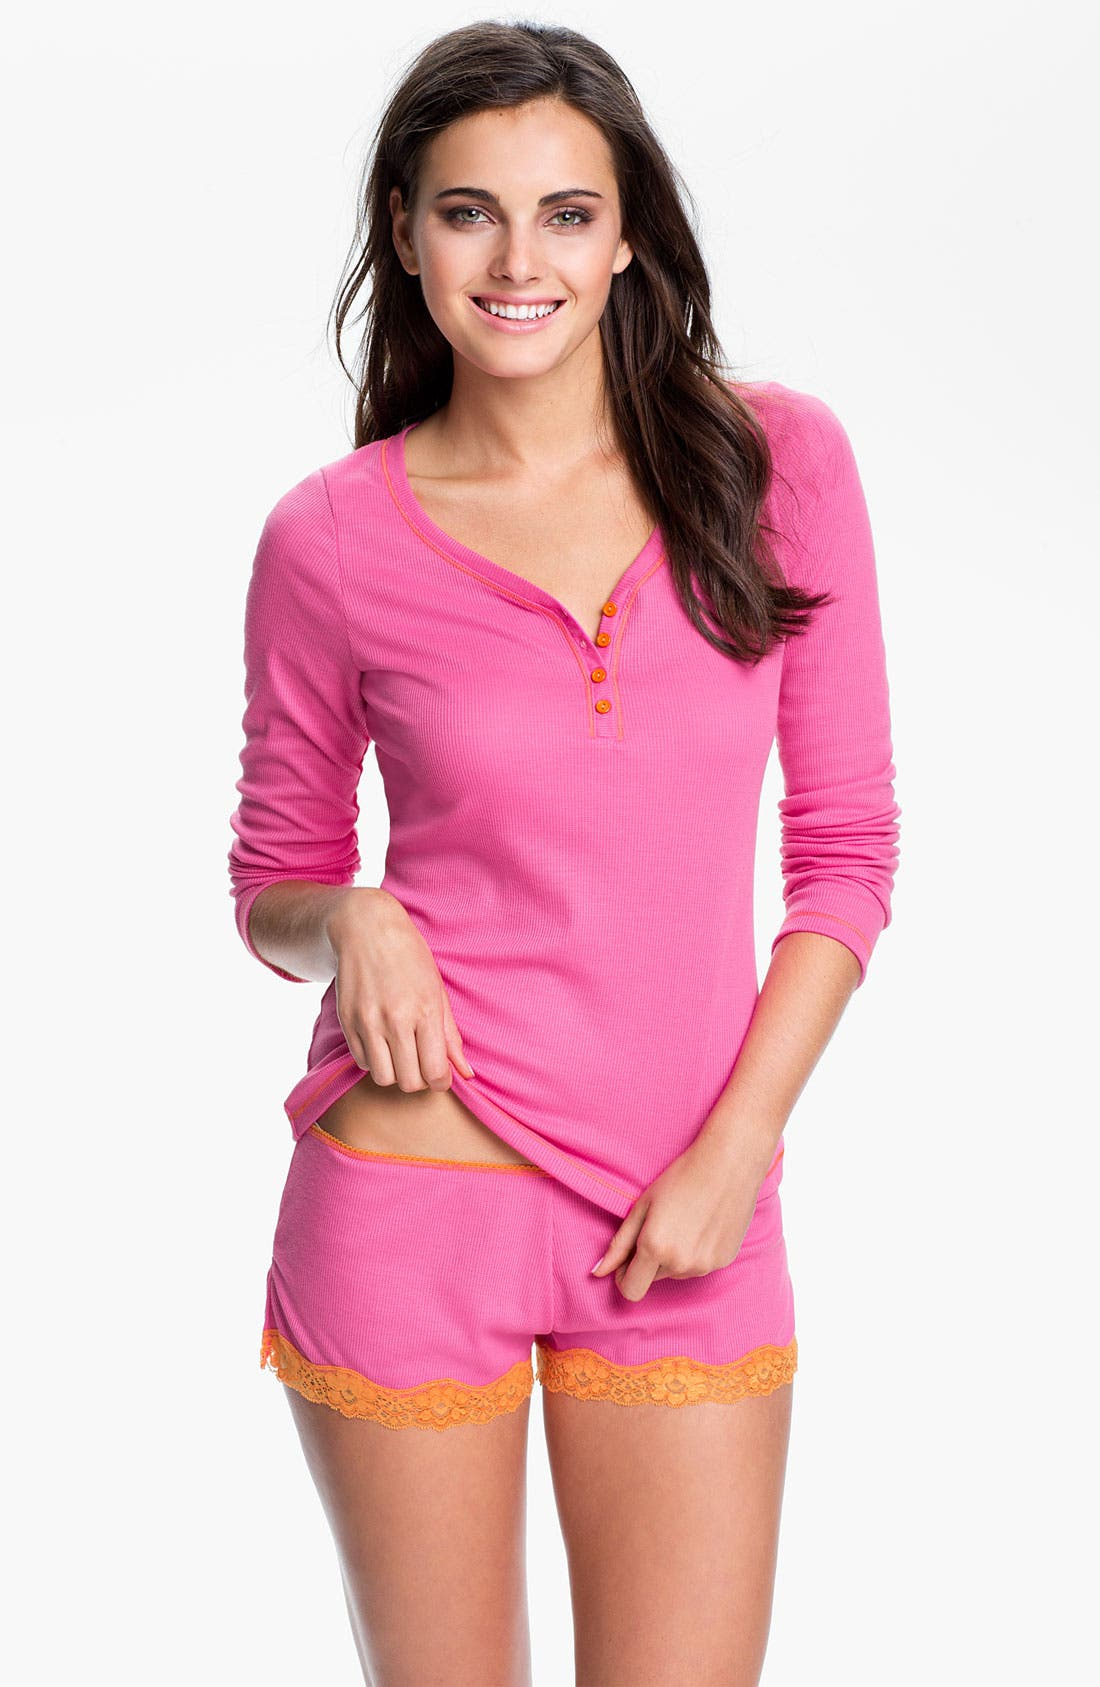 Contrast Trim Pajamas,                         Main,                         color, Hot Pink W/ Dreamsicle